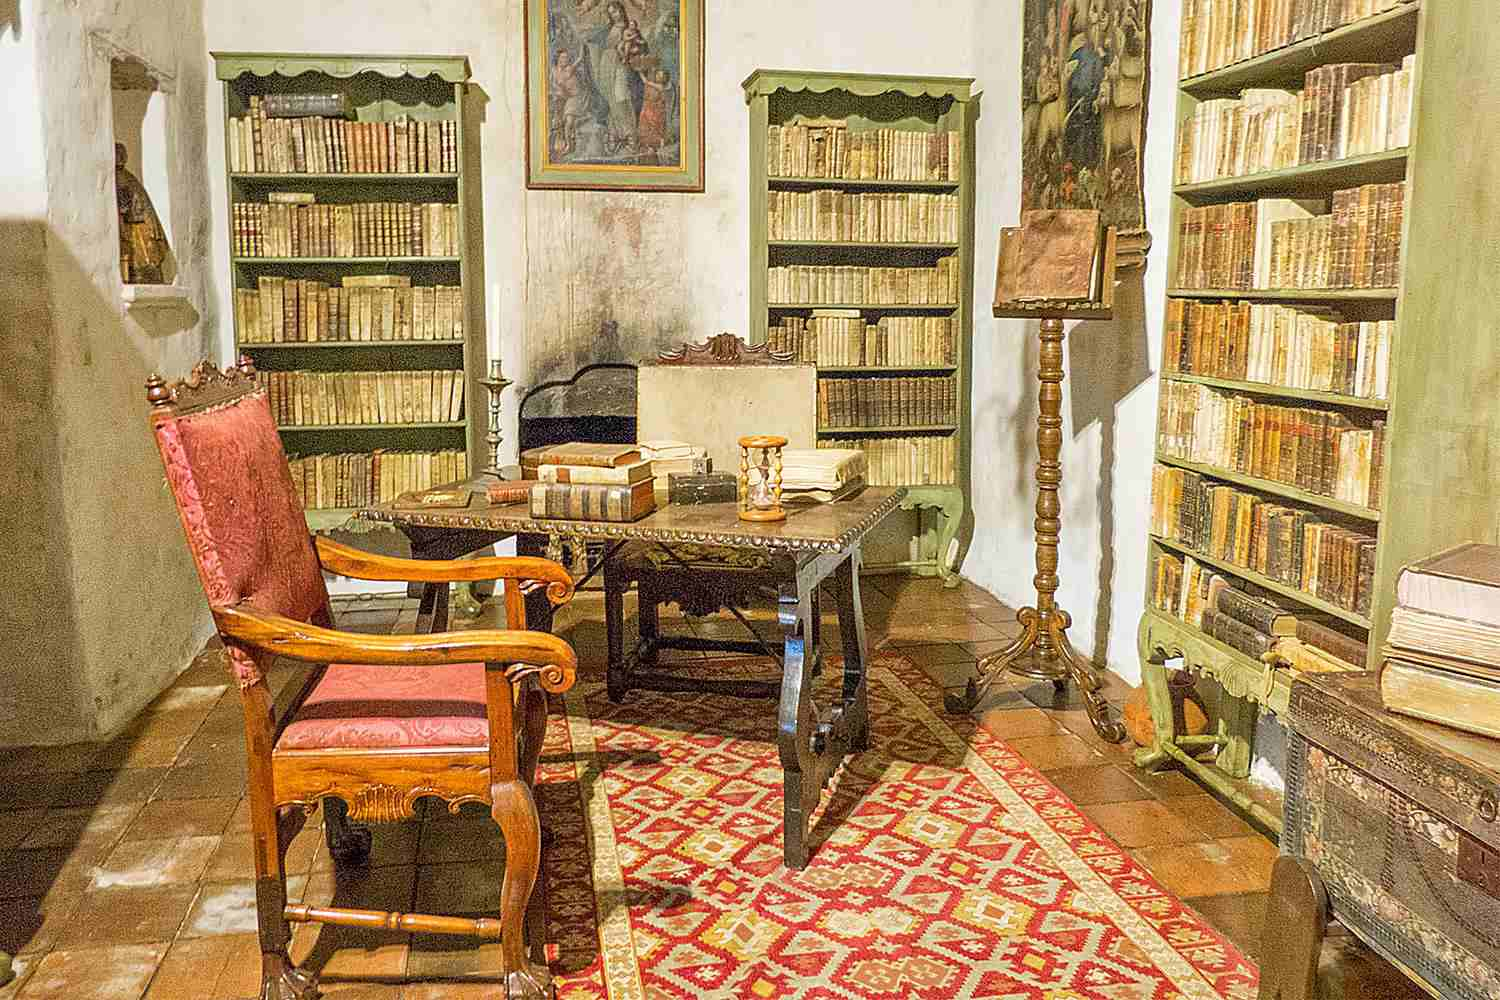 California's First Library, at Mission Carmel